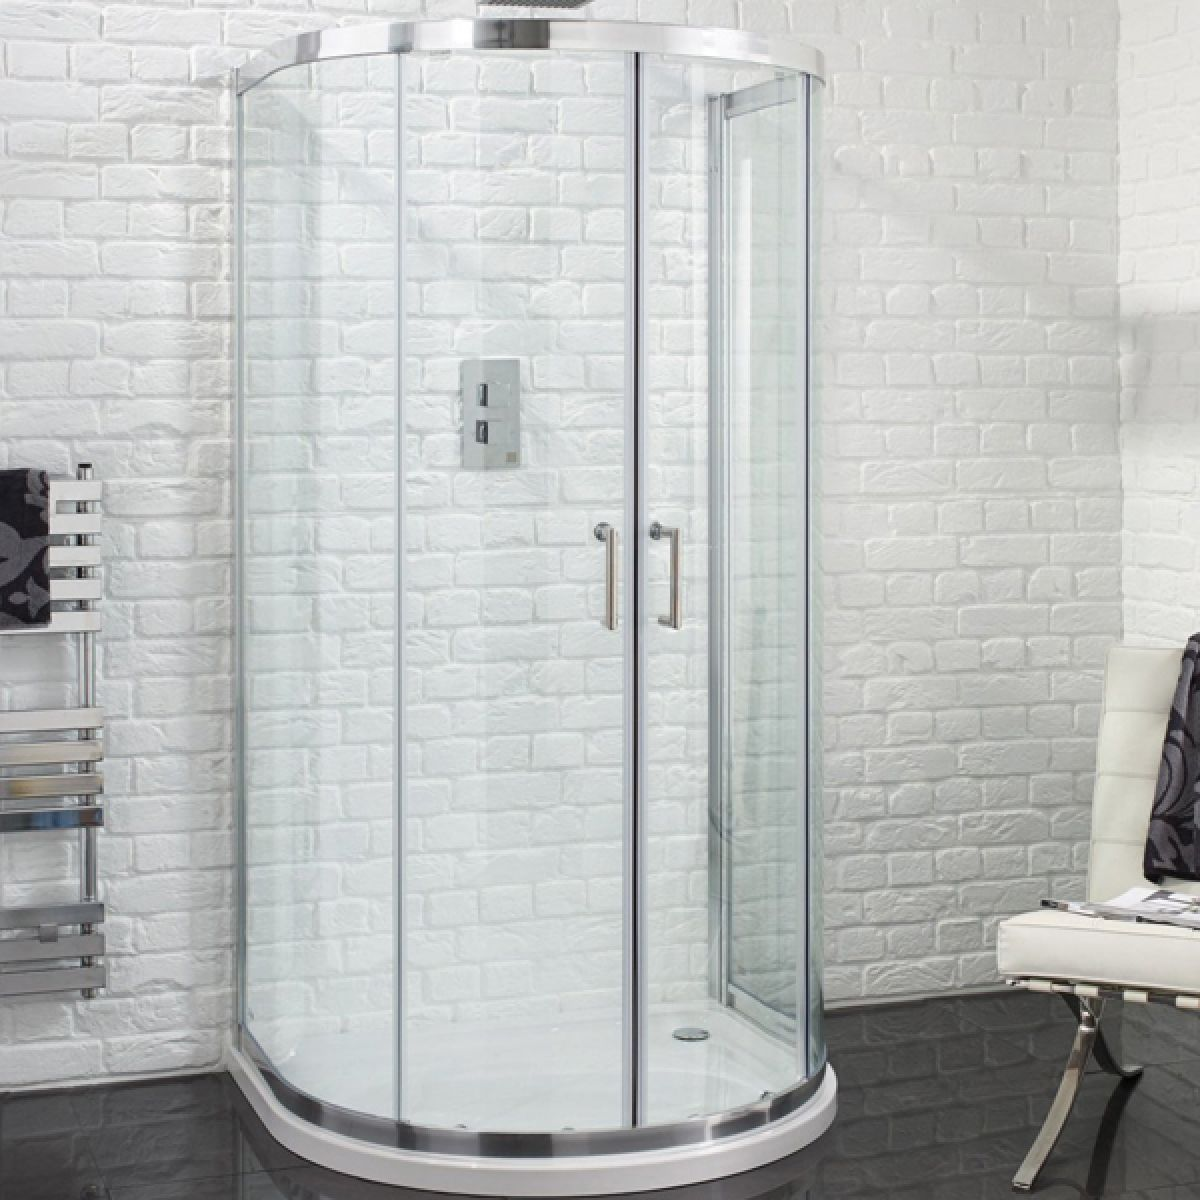 Aquadart Venturi 6 U Shaped Quadrant Shower Enclosure 915 x 1040mm